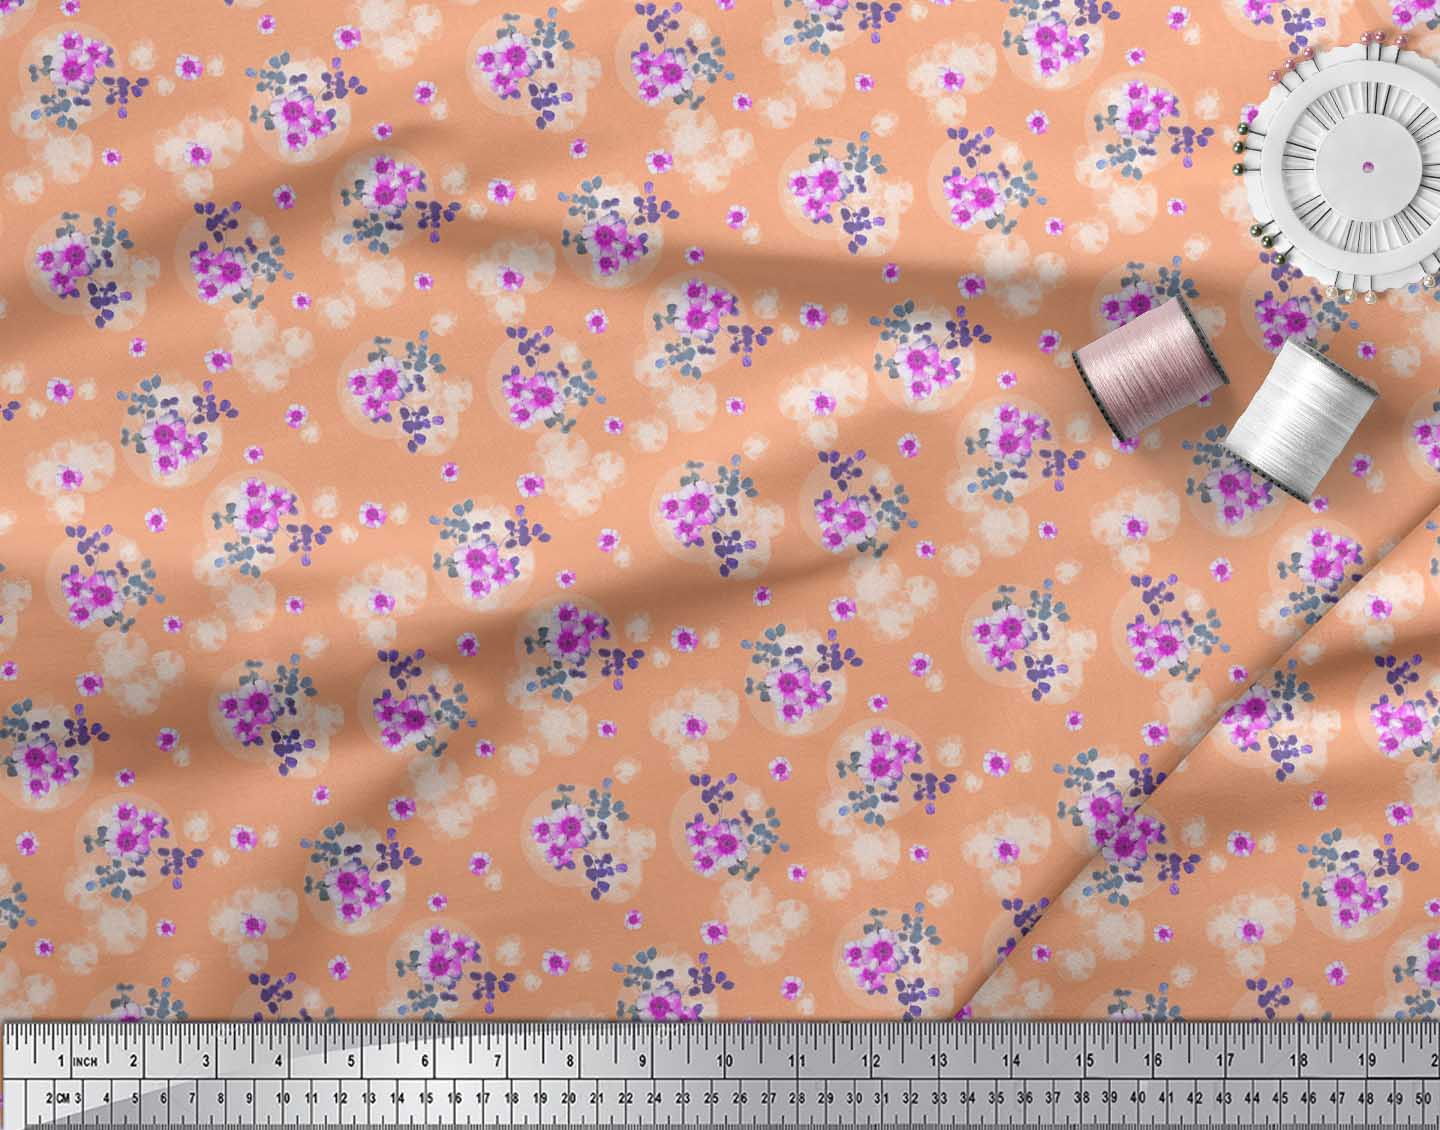 Soimoi-Orange-Cotton-Poplin-Fabric-Leaves-amp-Periwinkle-Floral-Print-laD thumbnail 4